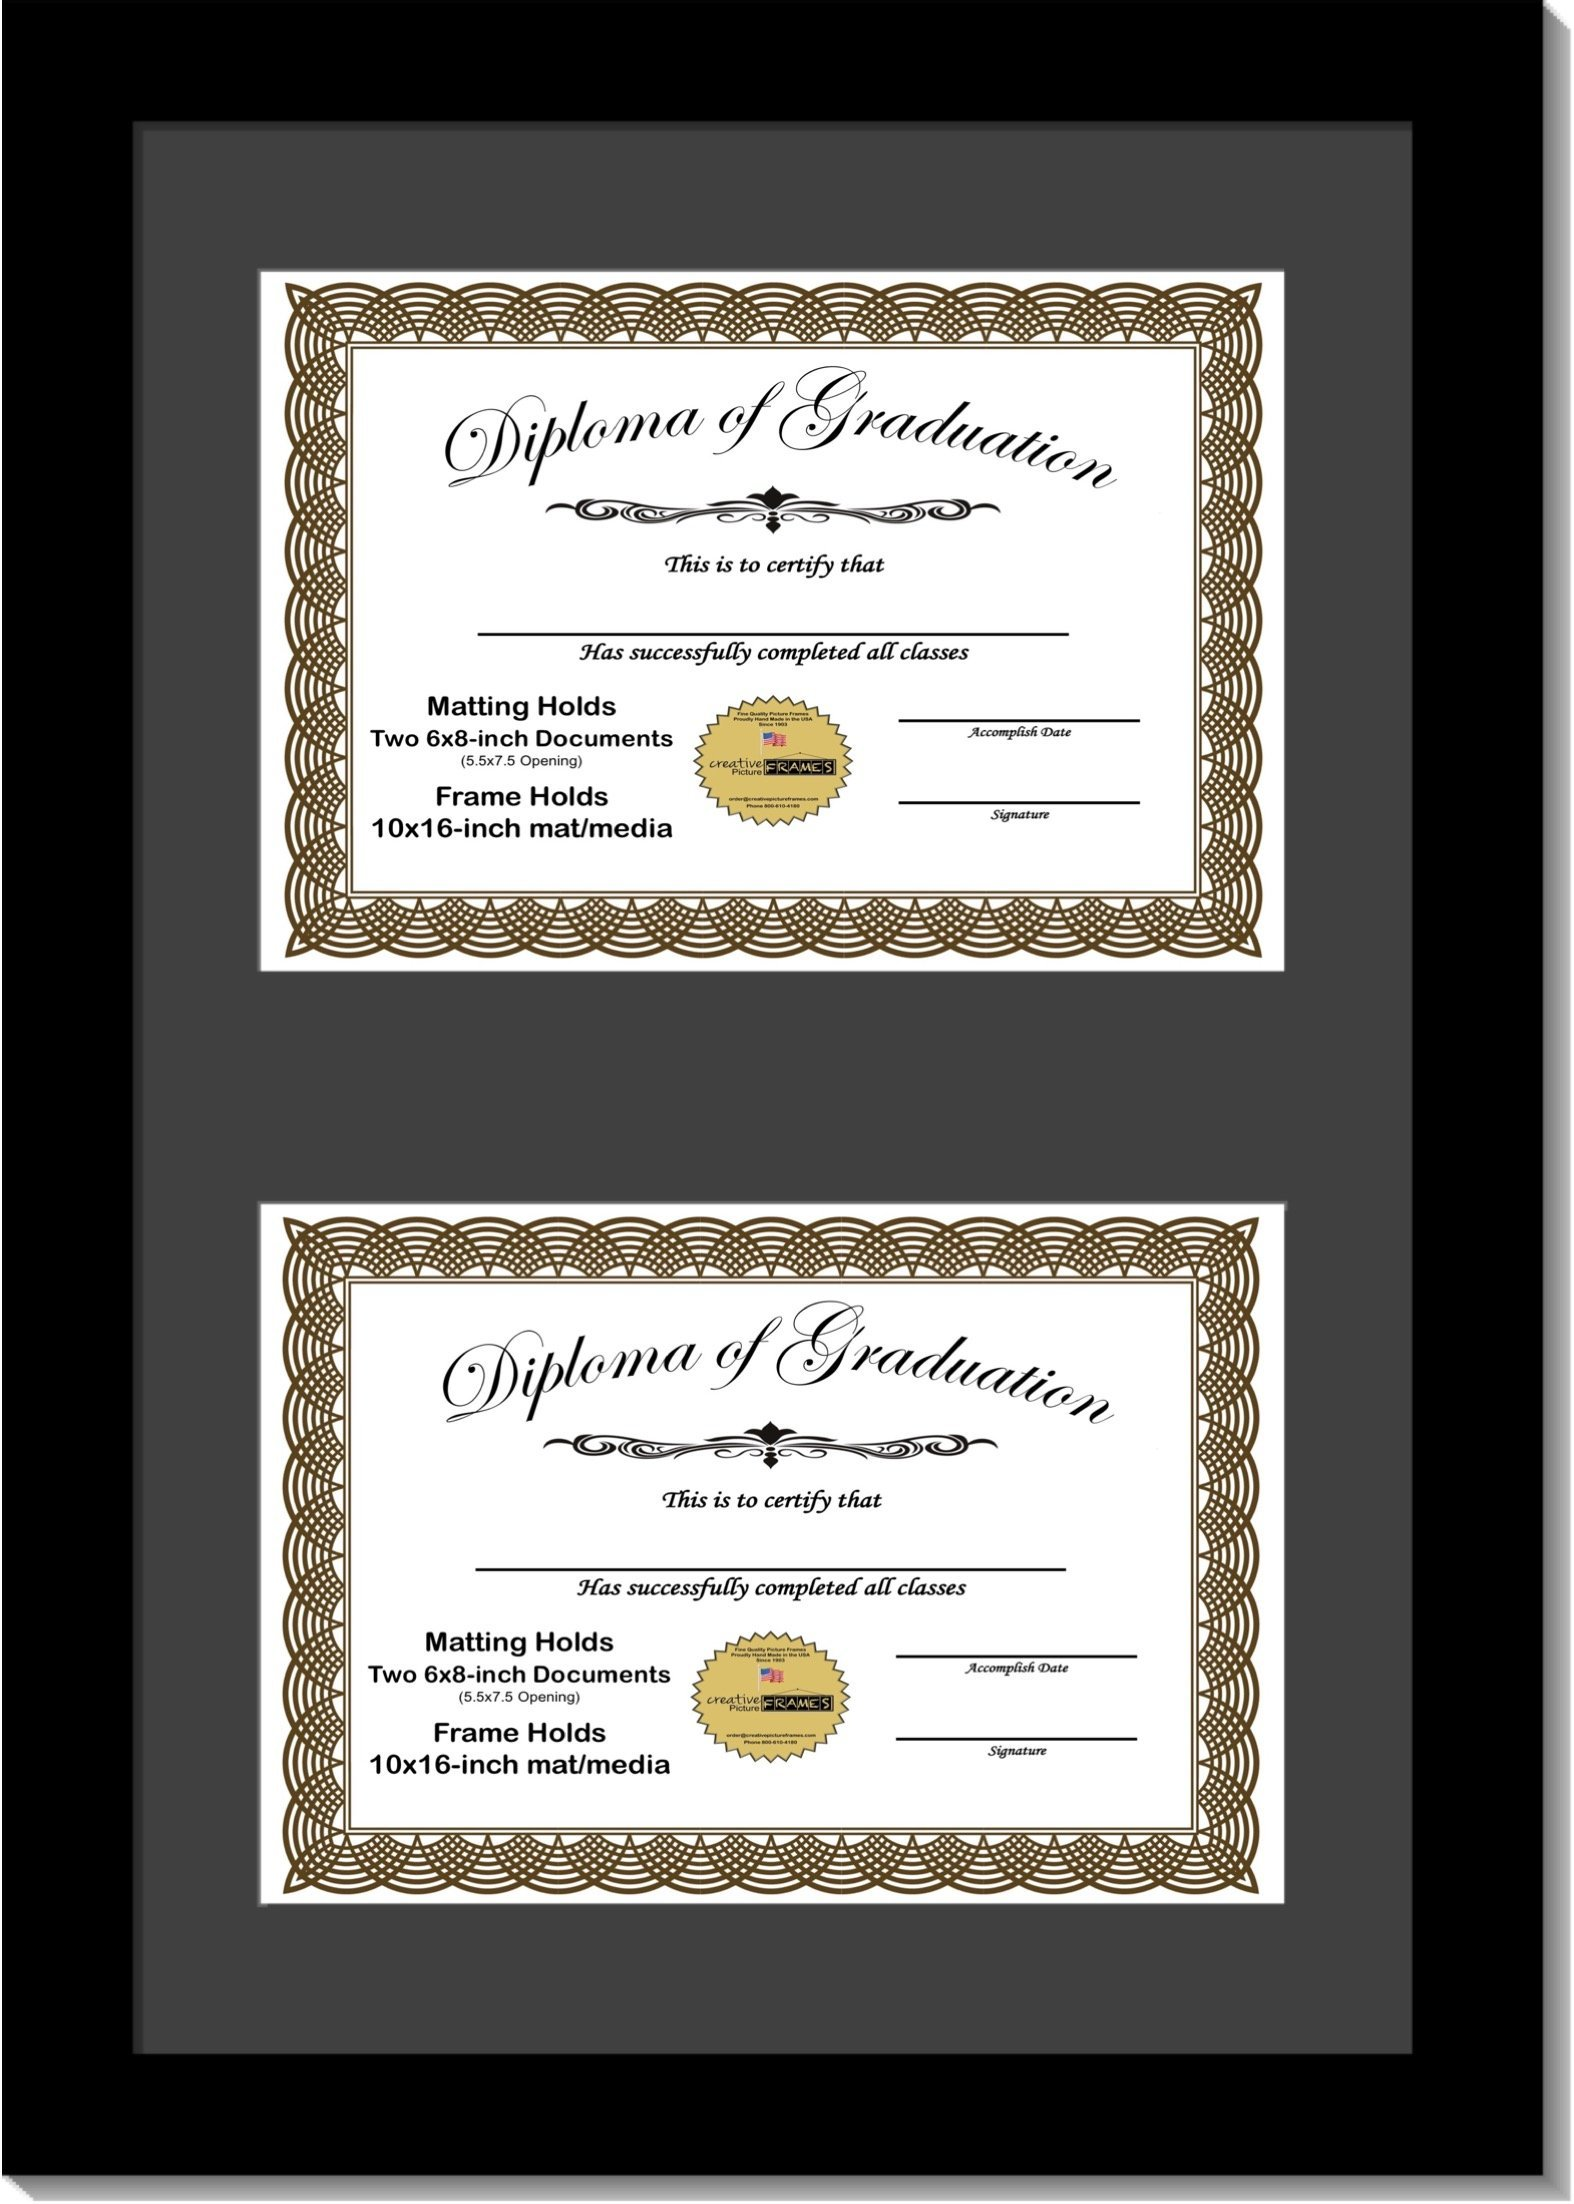 CreativePF [6x8-2-10x16bk-b] Black Double Diploma Frame with 2 Opening Black Matting   Holds 2-6x8-inch Documents with Installed Wall Hanger